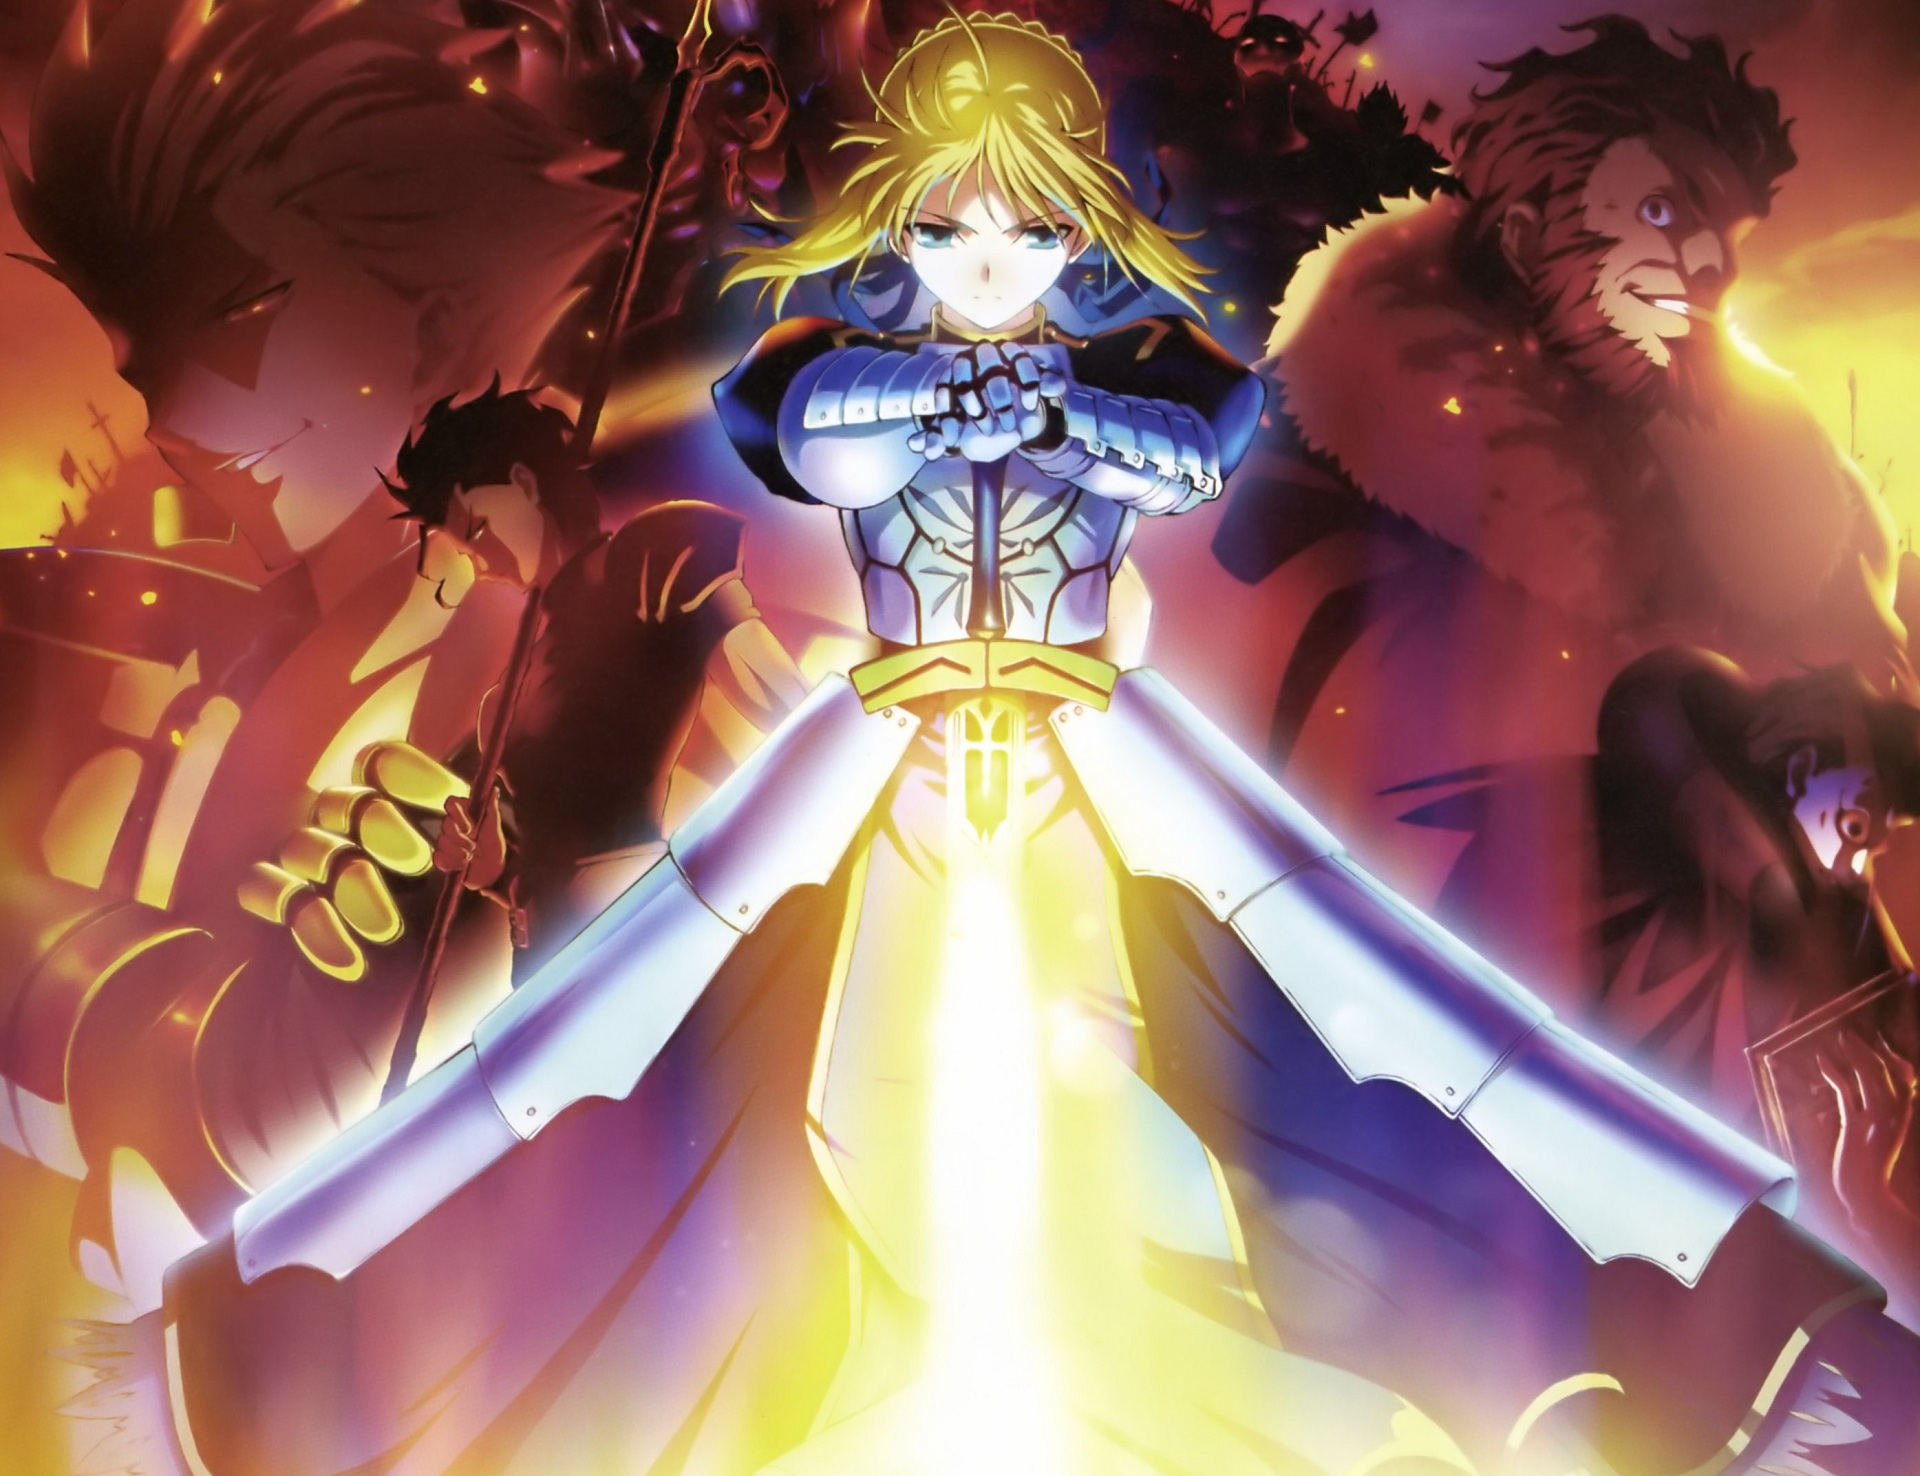 Fate Stay Night Gilgamesh Saber Zero Anime Girls Rider Caster Lancer Assassin Series Wallpaper